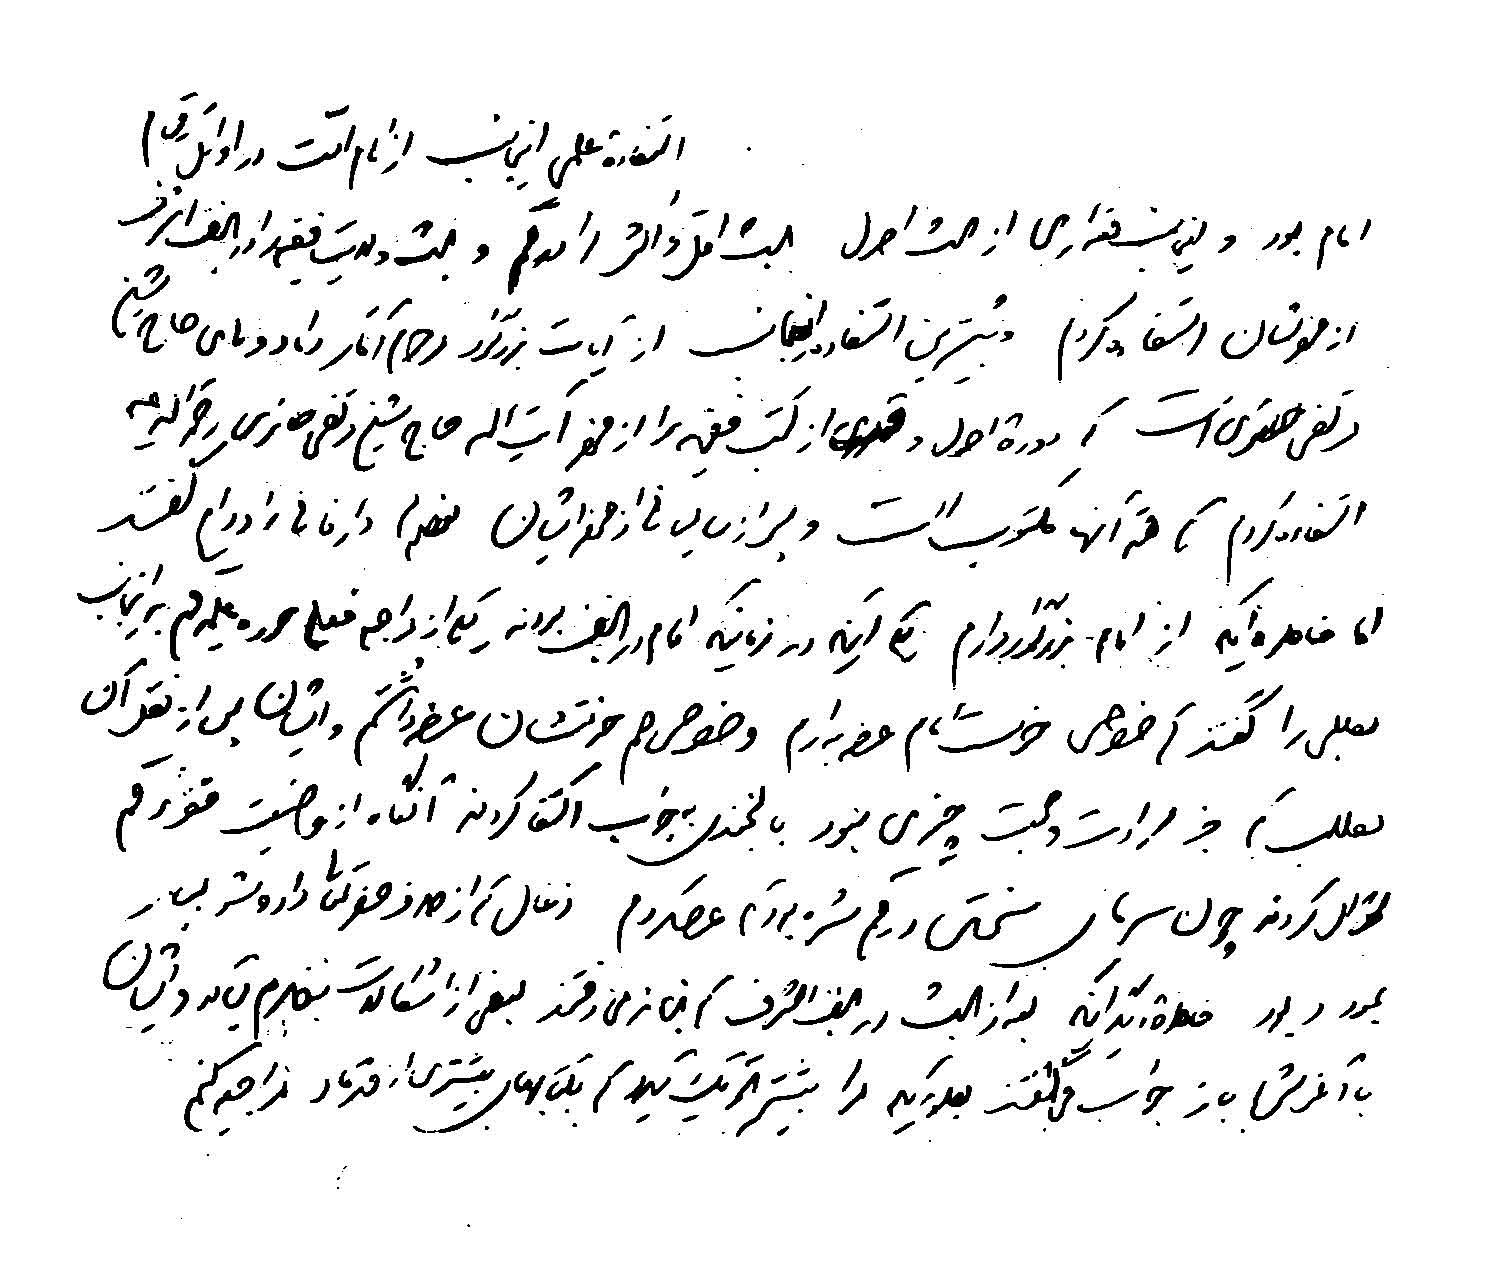 430-p163-181_Page_07